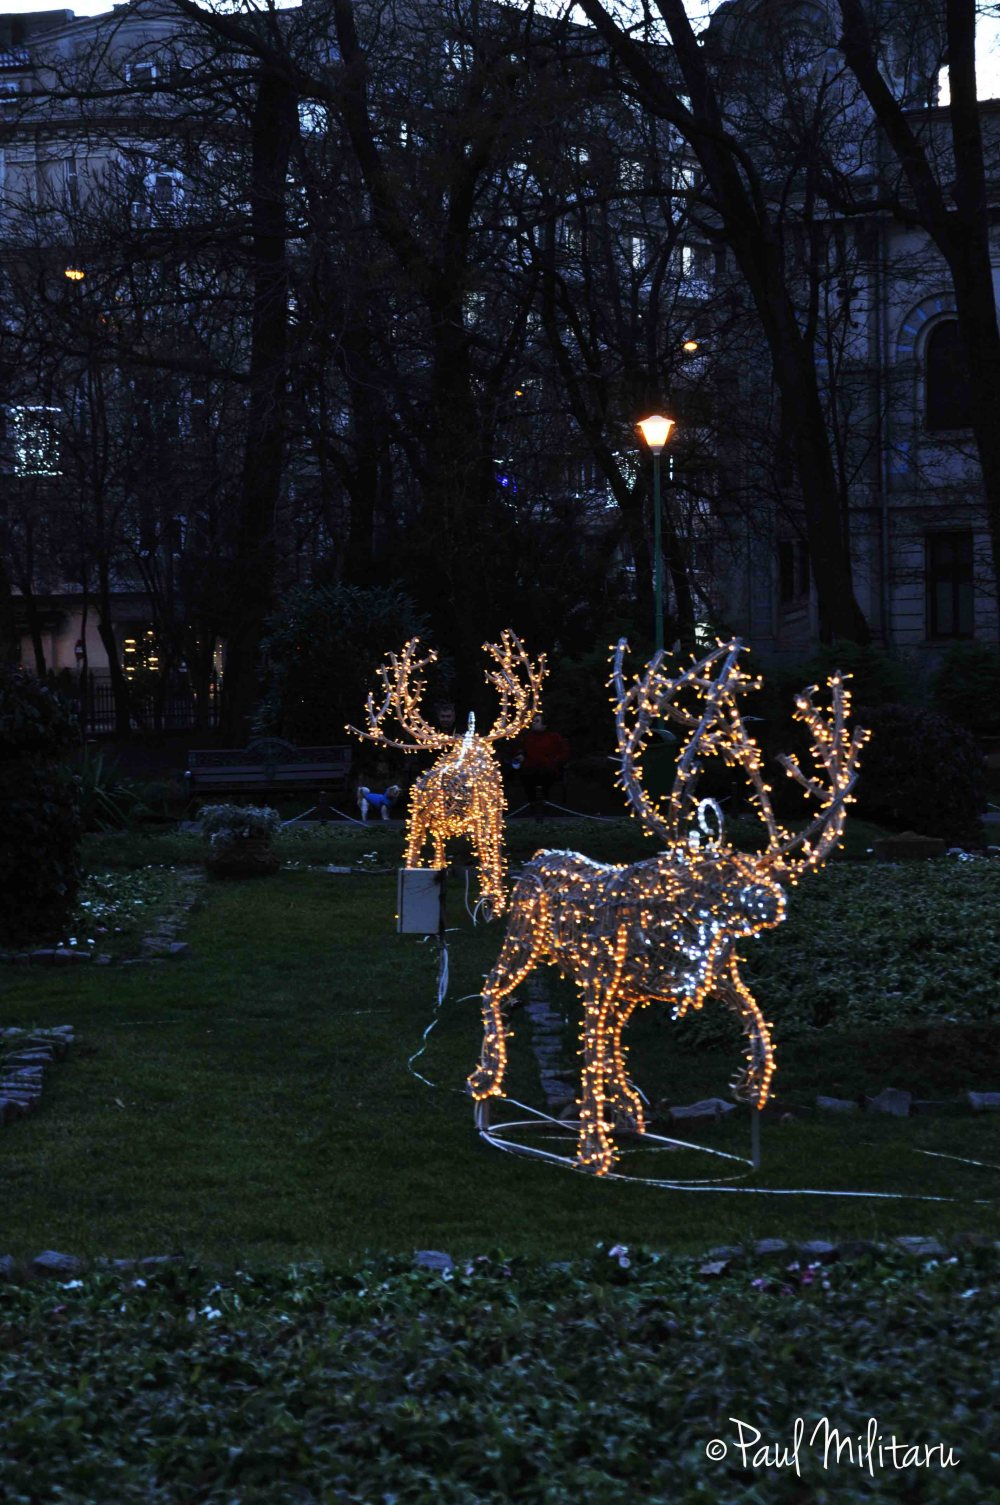 reindeers in night